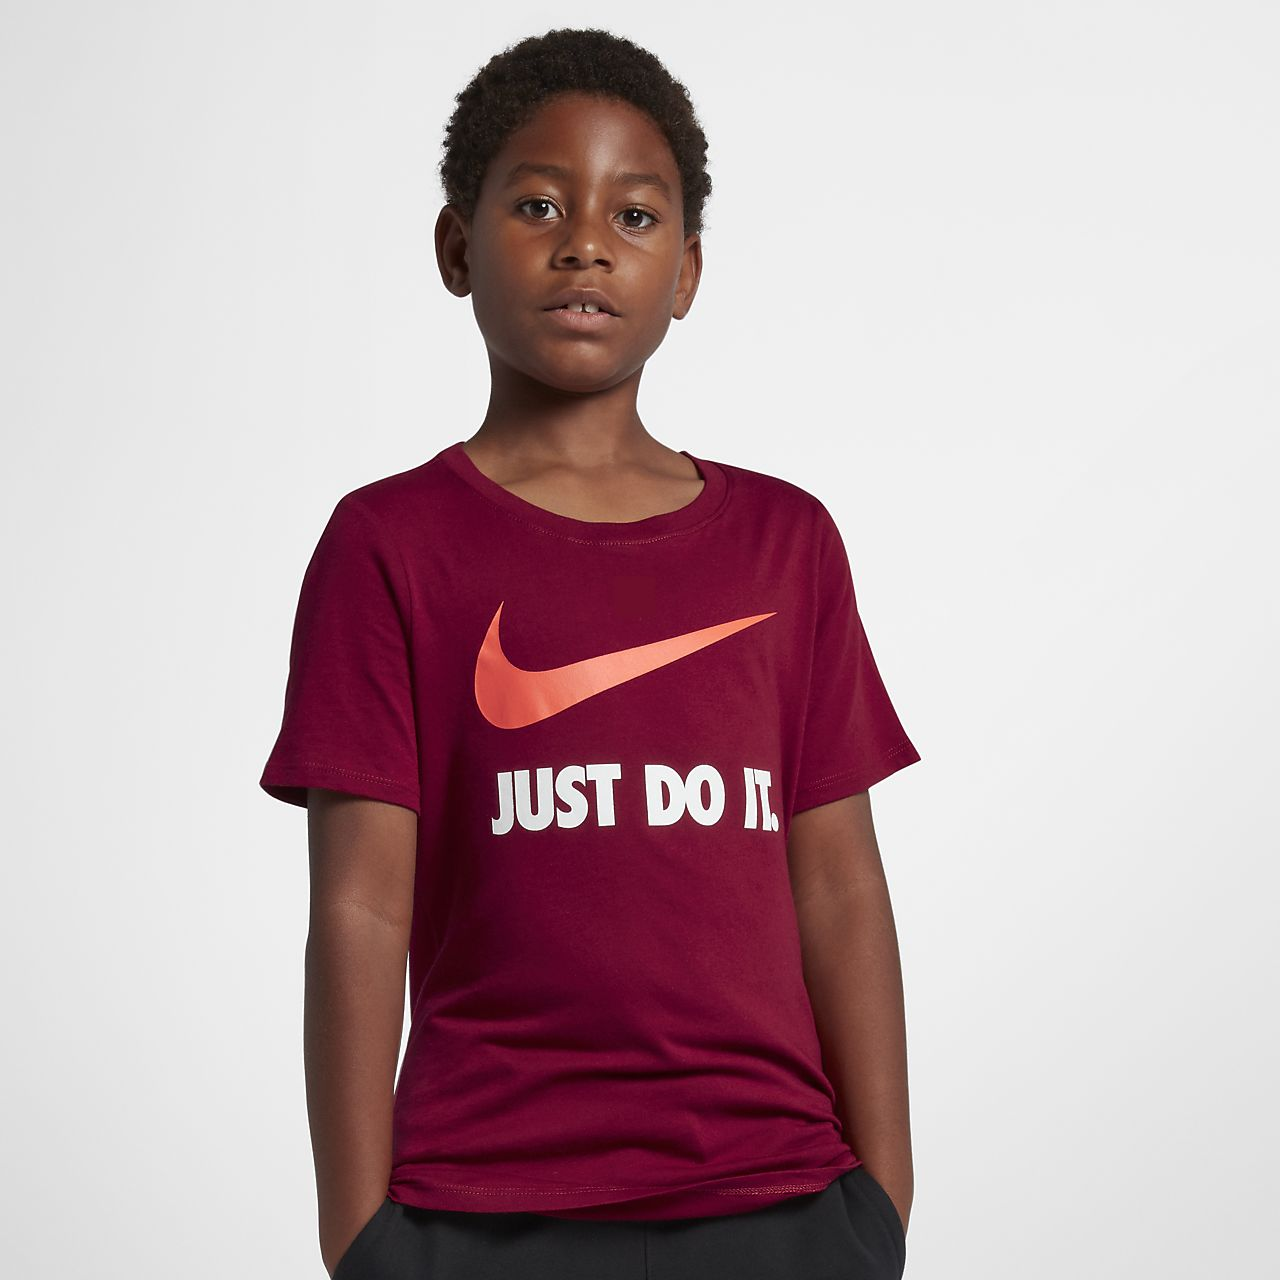 bcd96a2838dd Nike Just Do It Swoosh Big Kids  (Boys ) T-Shirt. Nike.com